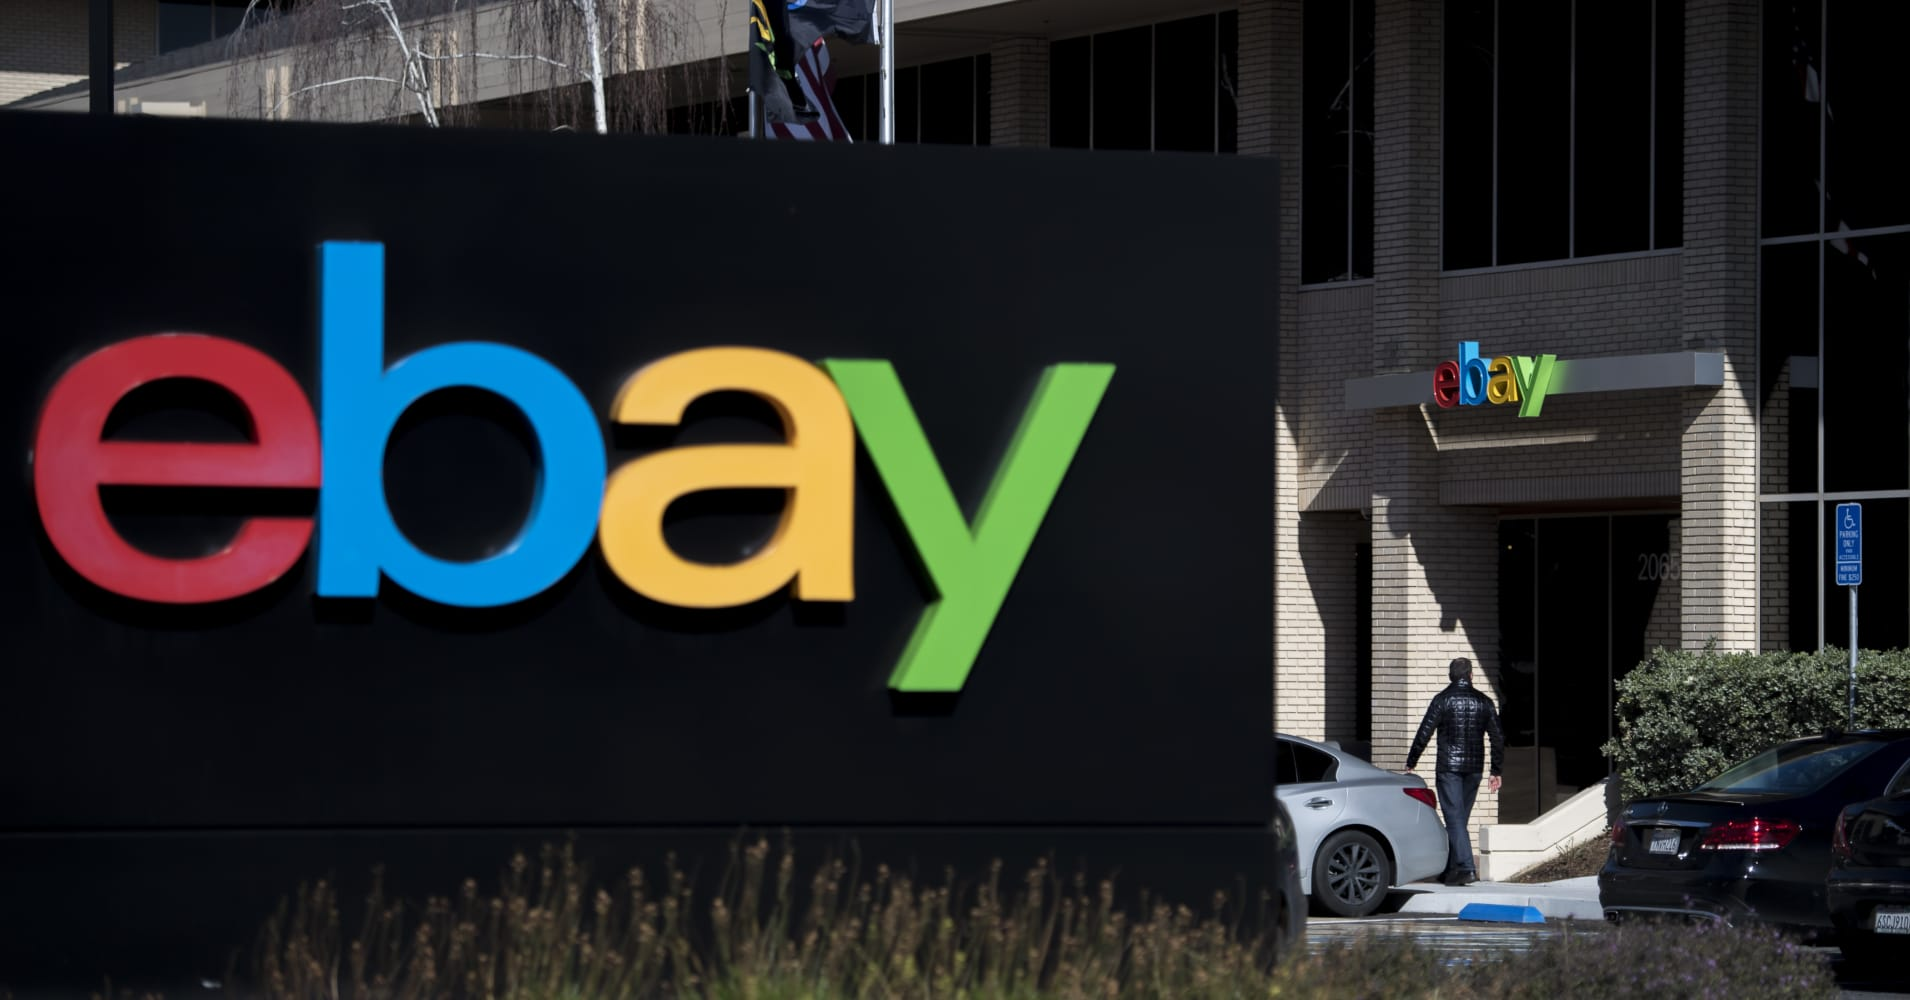 Shares of eBay surge as Elliott Management reveals $1.4 billion stake, recommends portfolio review